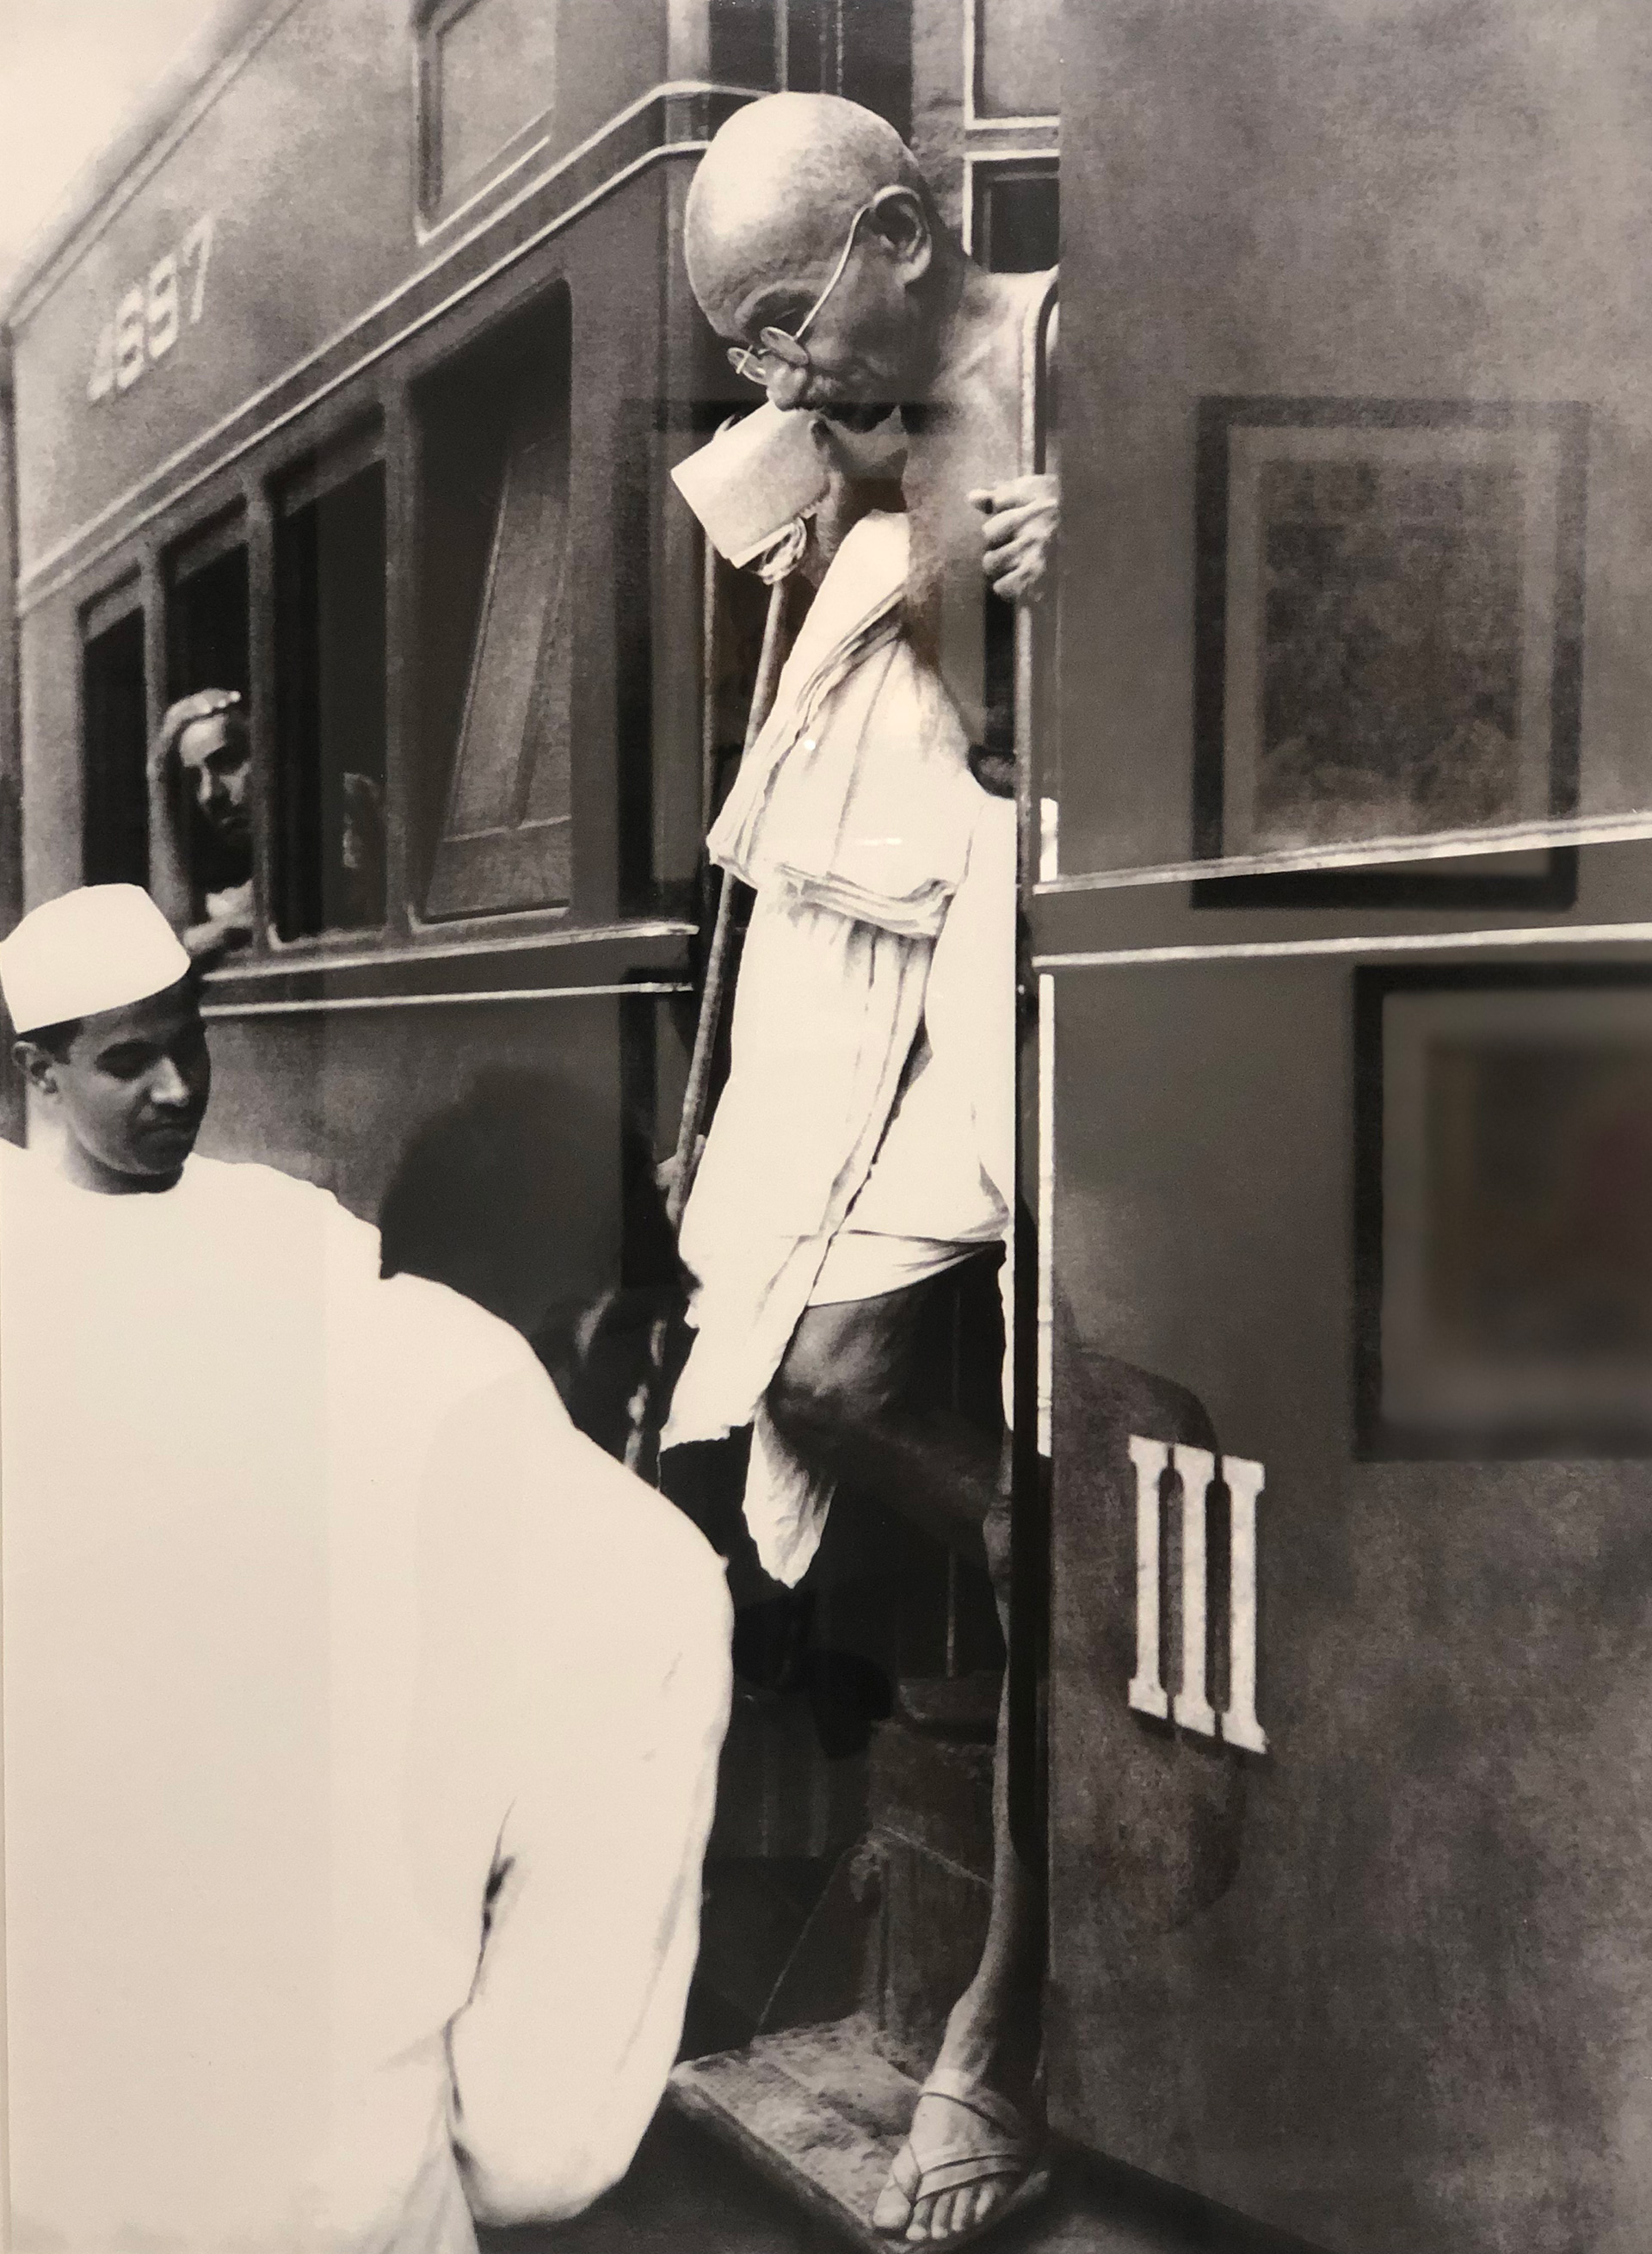 One of the photographs by Kulwant Roy, showing the Mahatma alighting from the train at New Delhi, in the 1940s | Exhibition | Santati | Mahatma Gandhi | STIRworld